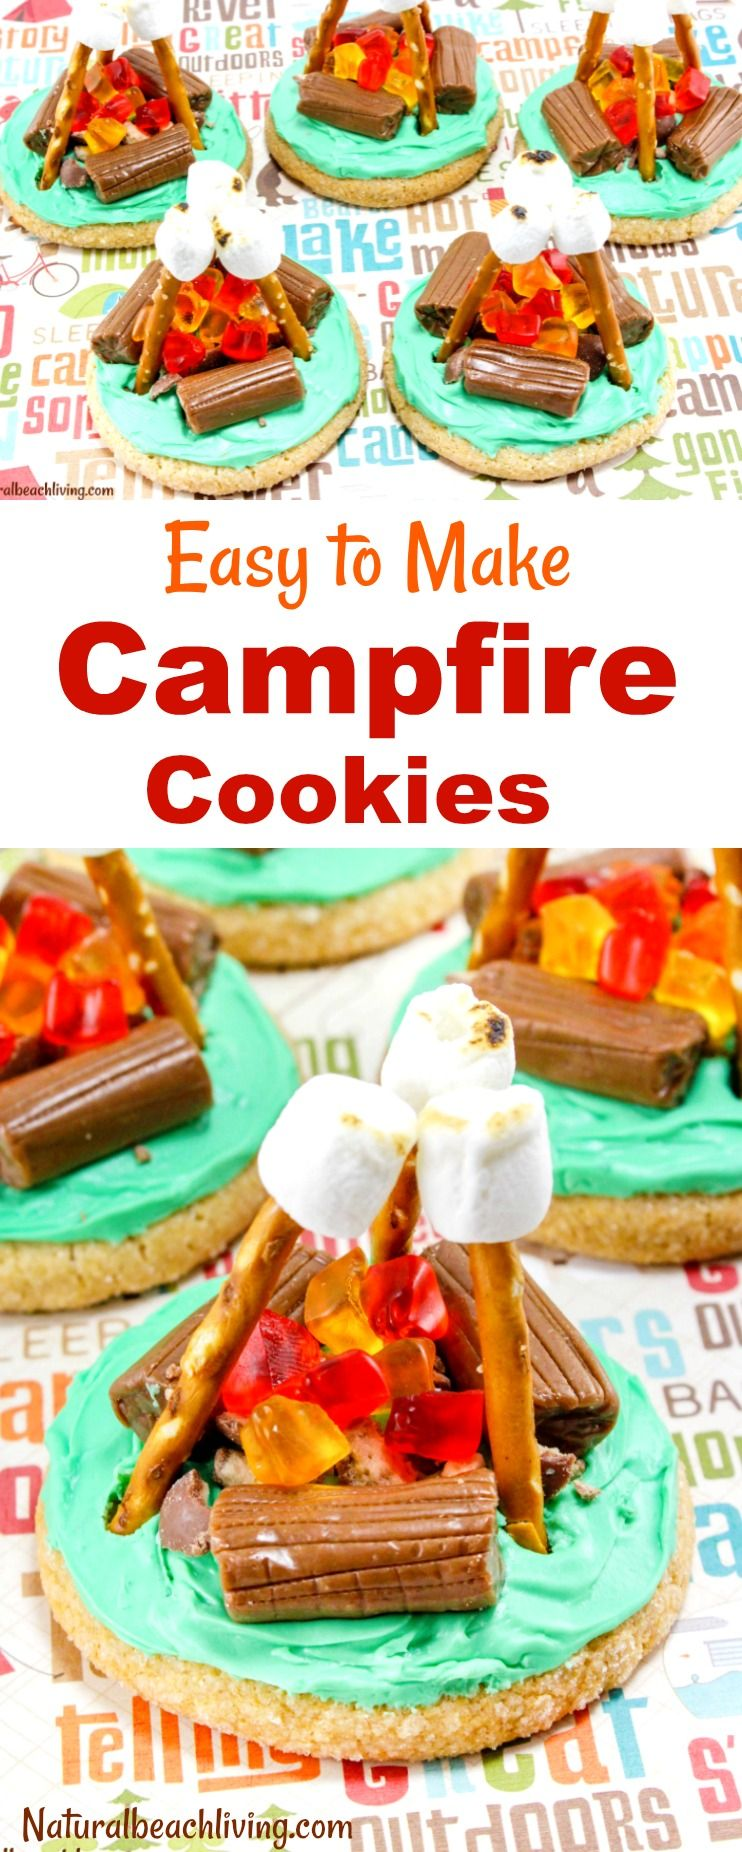 Edible Crafts For Kids: Fun-Filled Recipe Activities With Food - Forkly